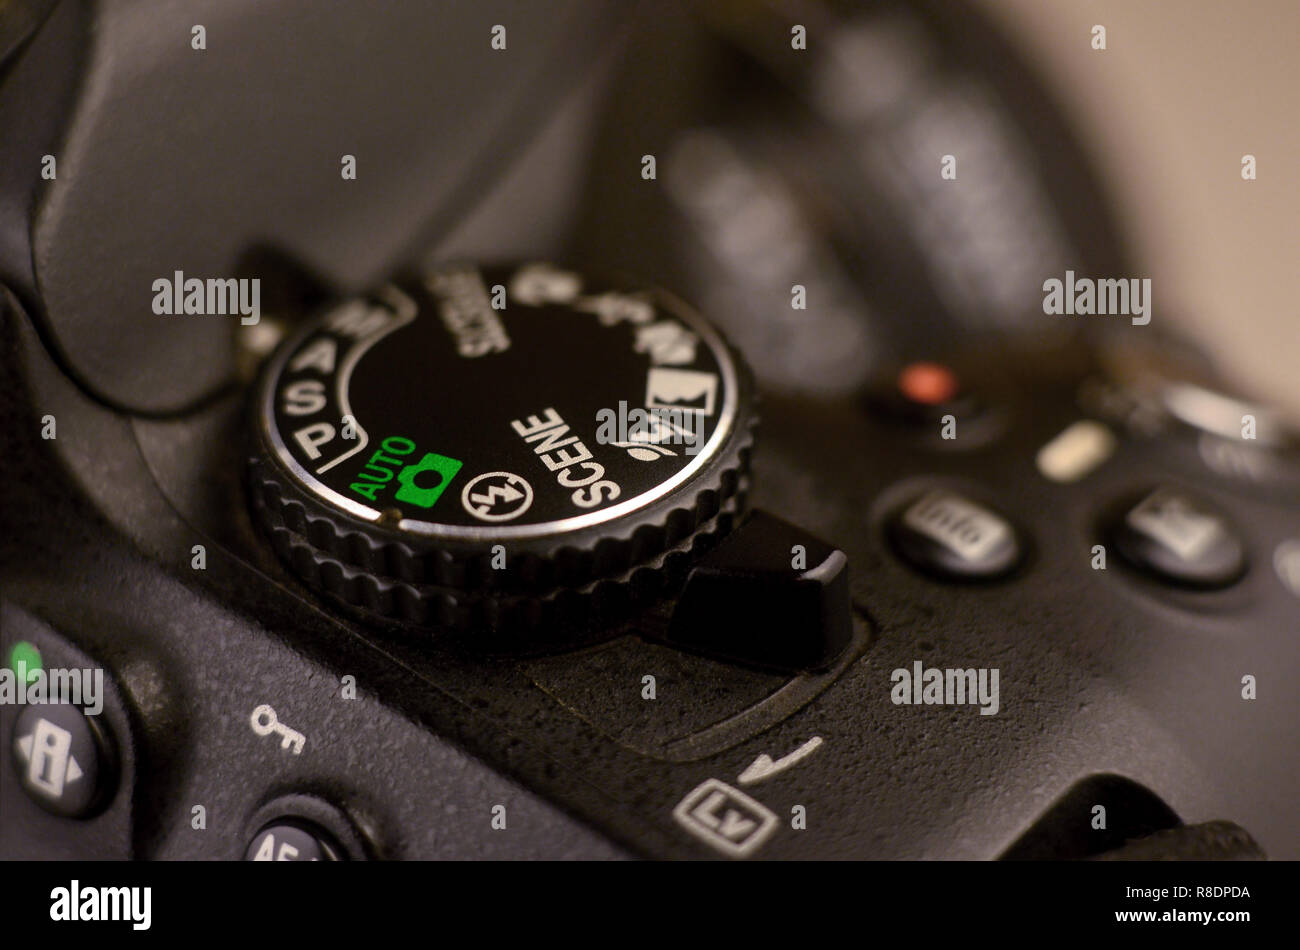 Close-up macro shot of a modern digital SLR camera. Detailed photo of black camera body with buttons to control and switch shooting modes - Stock Image